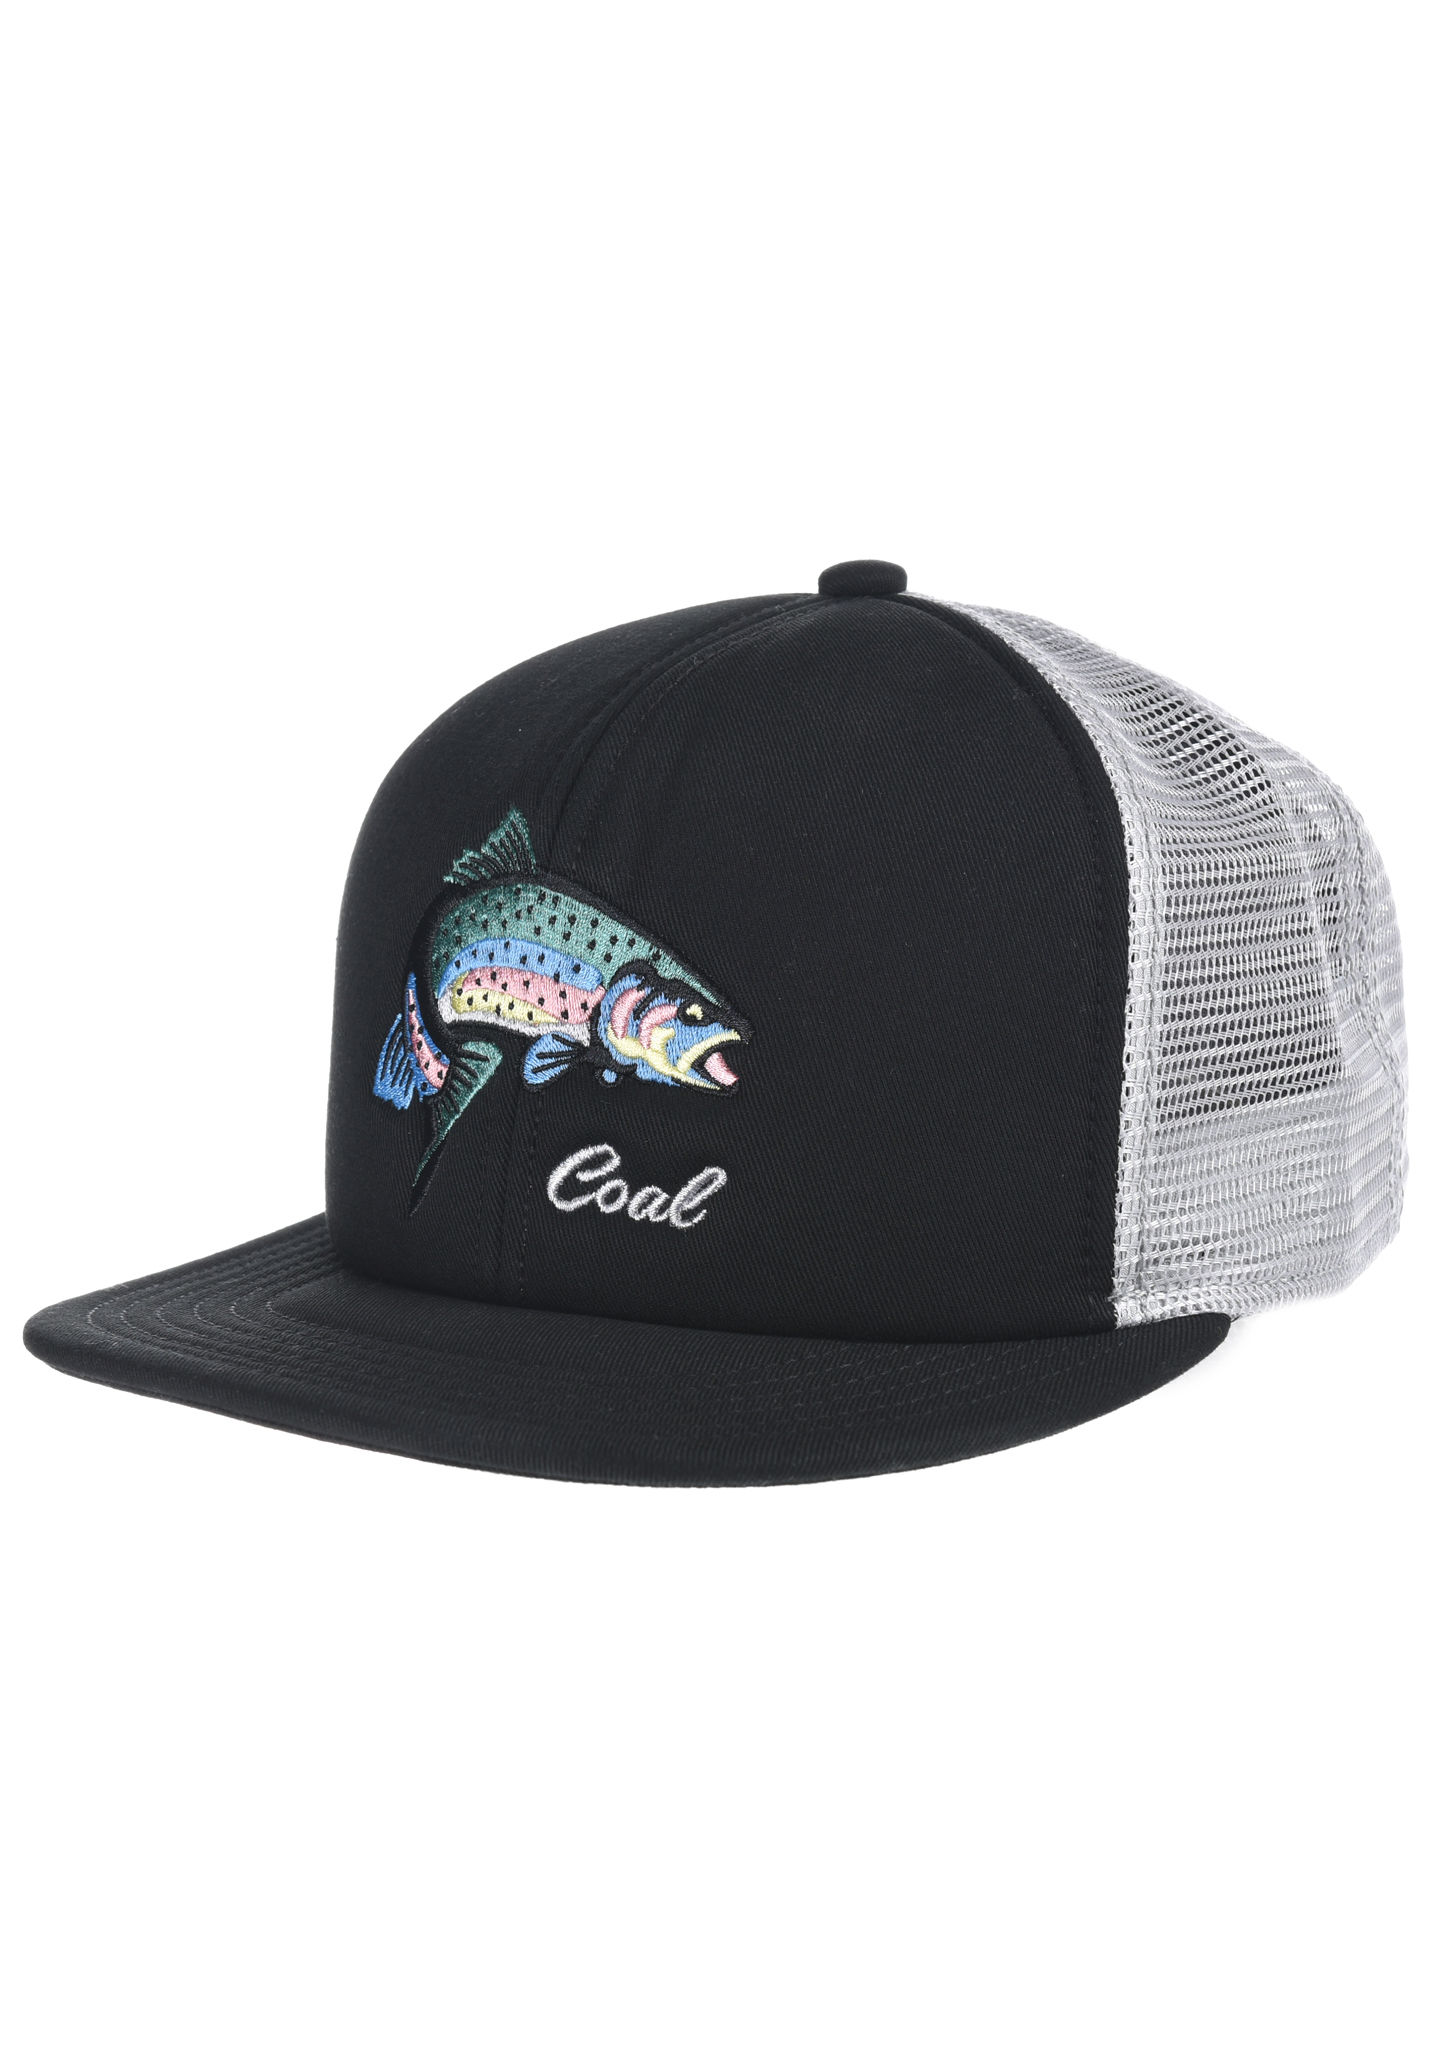 3074ab29dce Coal The Wilds - Trucker Cap - Black - Planet Sports